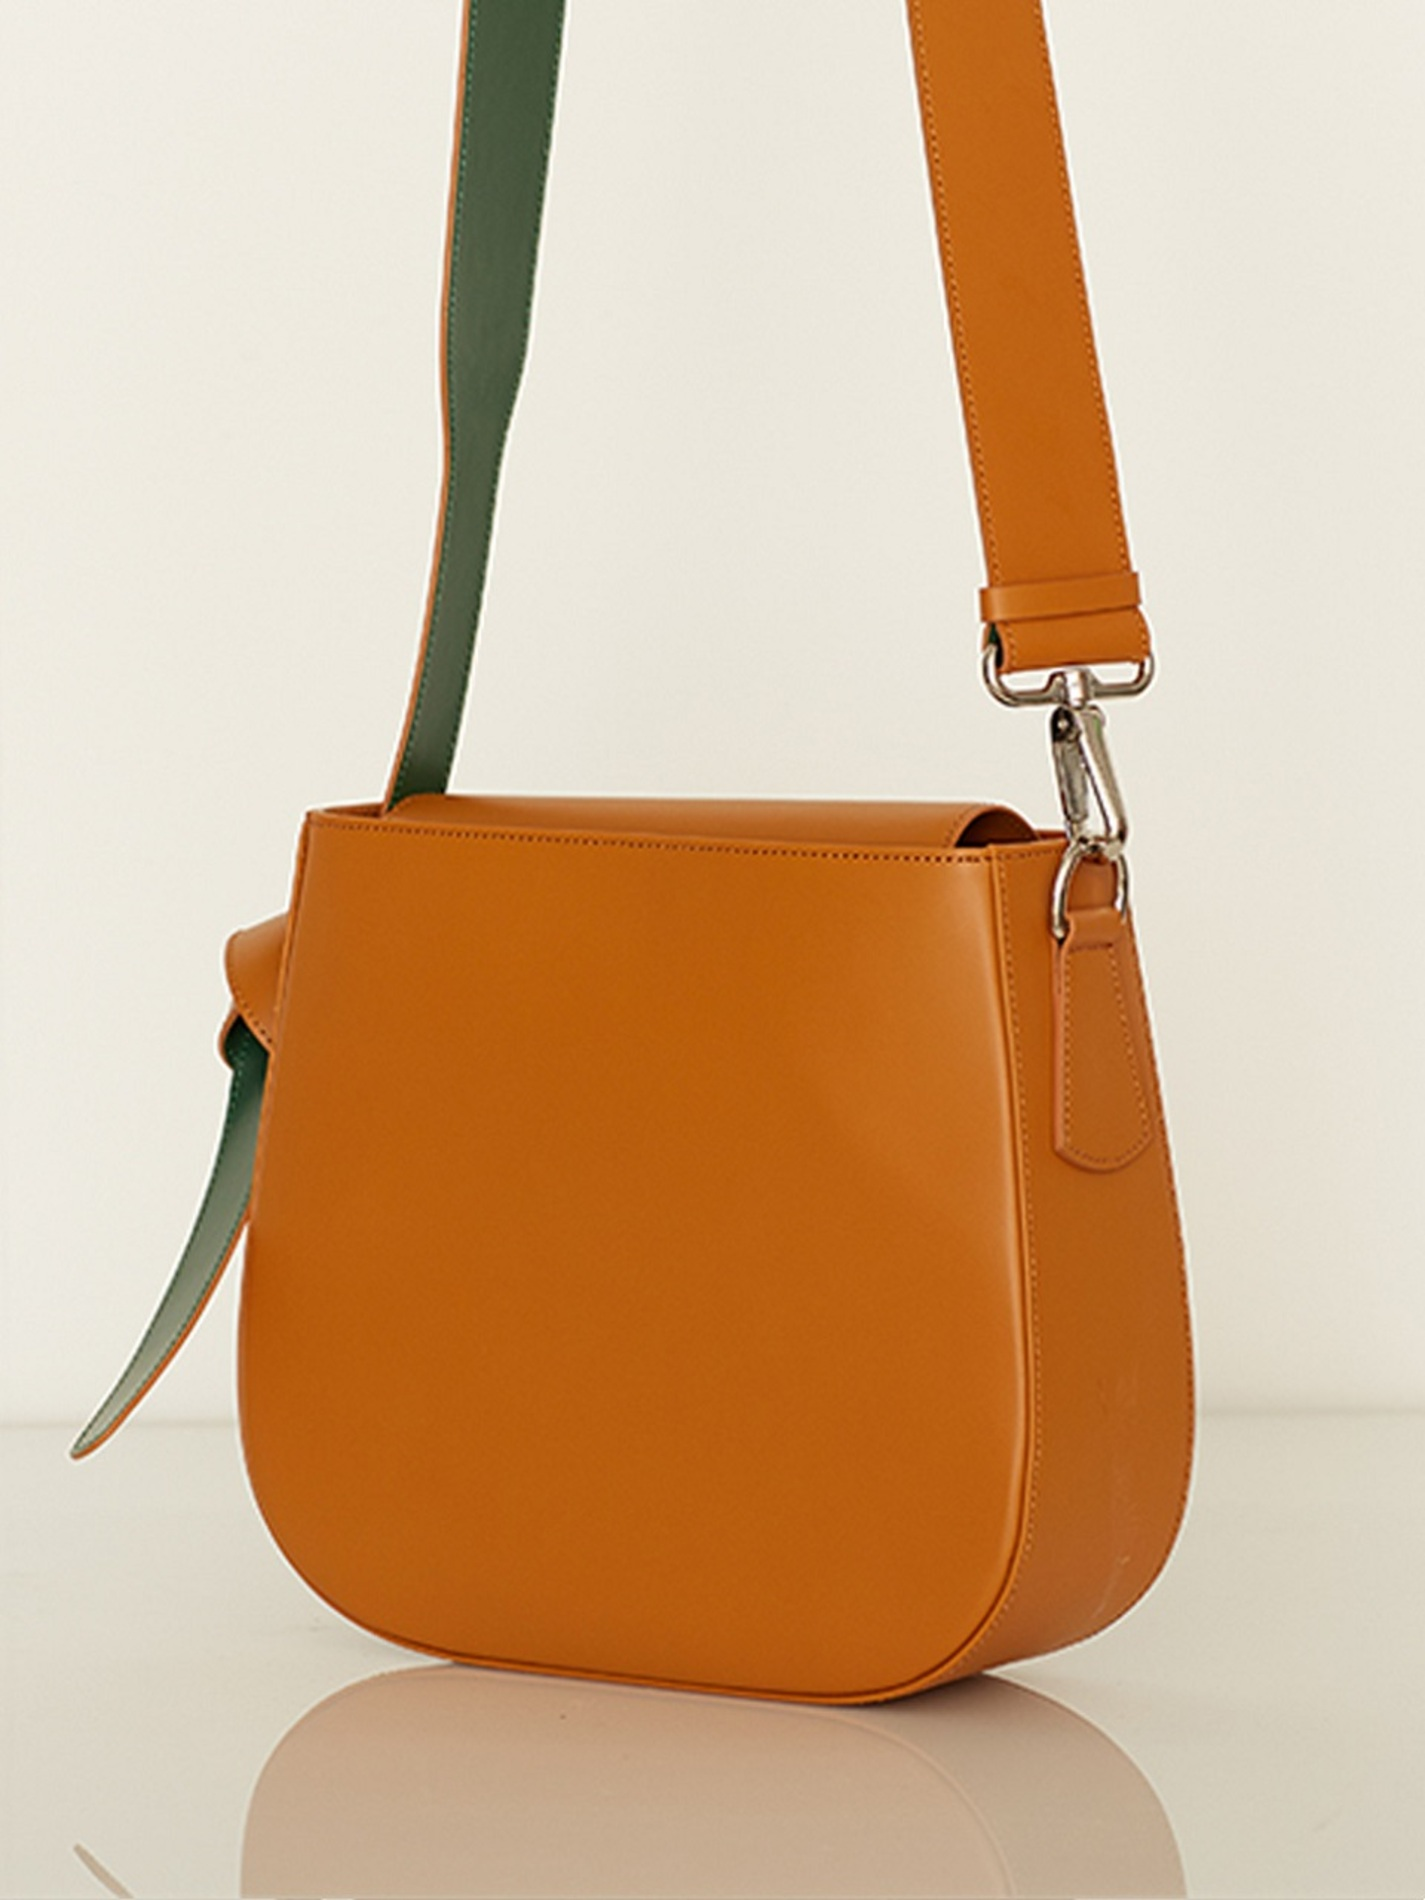 COLOR BLOCK BAG - BIG CAMEL